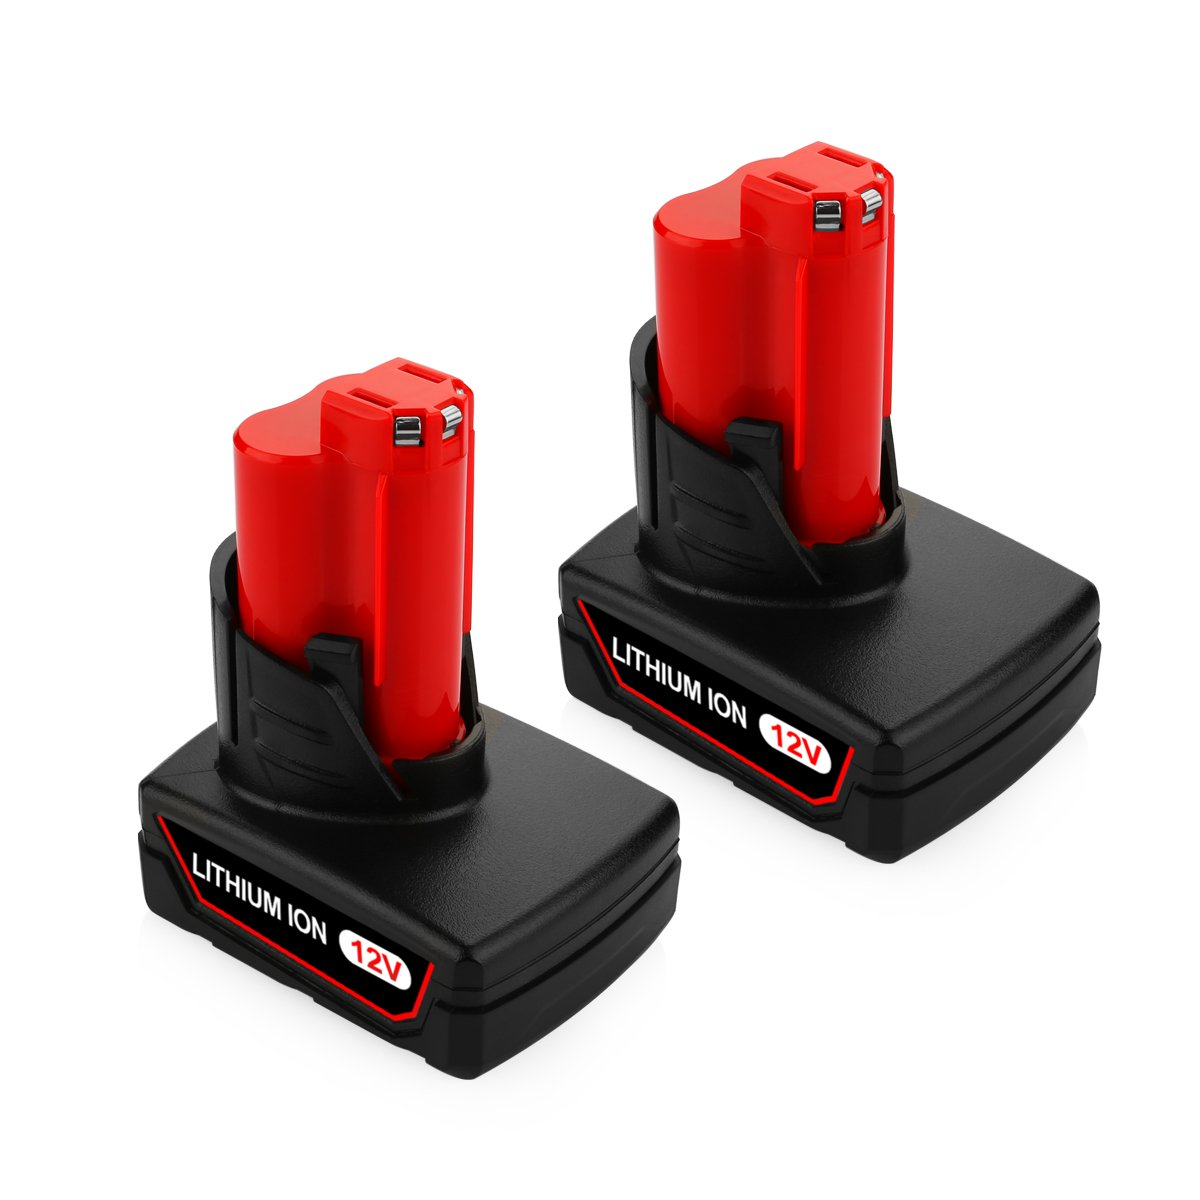 ANTRobut 6000mAh M12 12V Milwaukee Lithium-ion Replacement Battery For M12 XC 48-11-2440 48-11-2402 48-11-2411 M12 REDLITHIUM 12Volt Milwaukee Tools M12 Batteries (2 Pack)